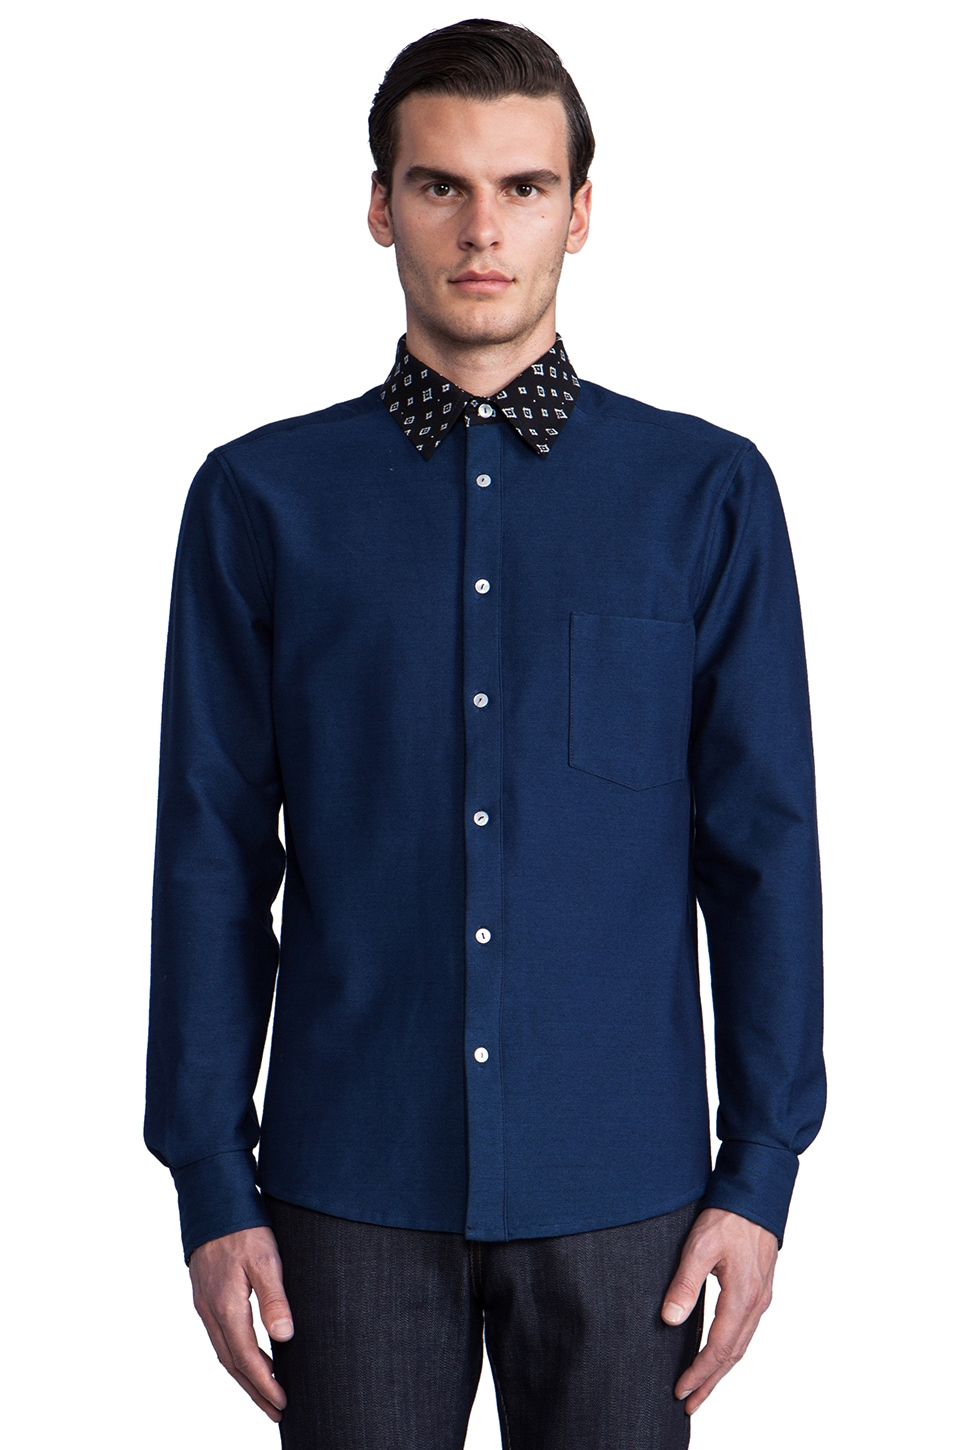 Still Good Rivoli Shirt in Indigo